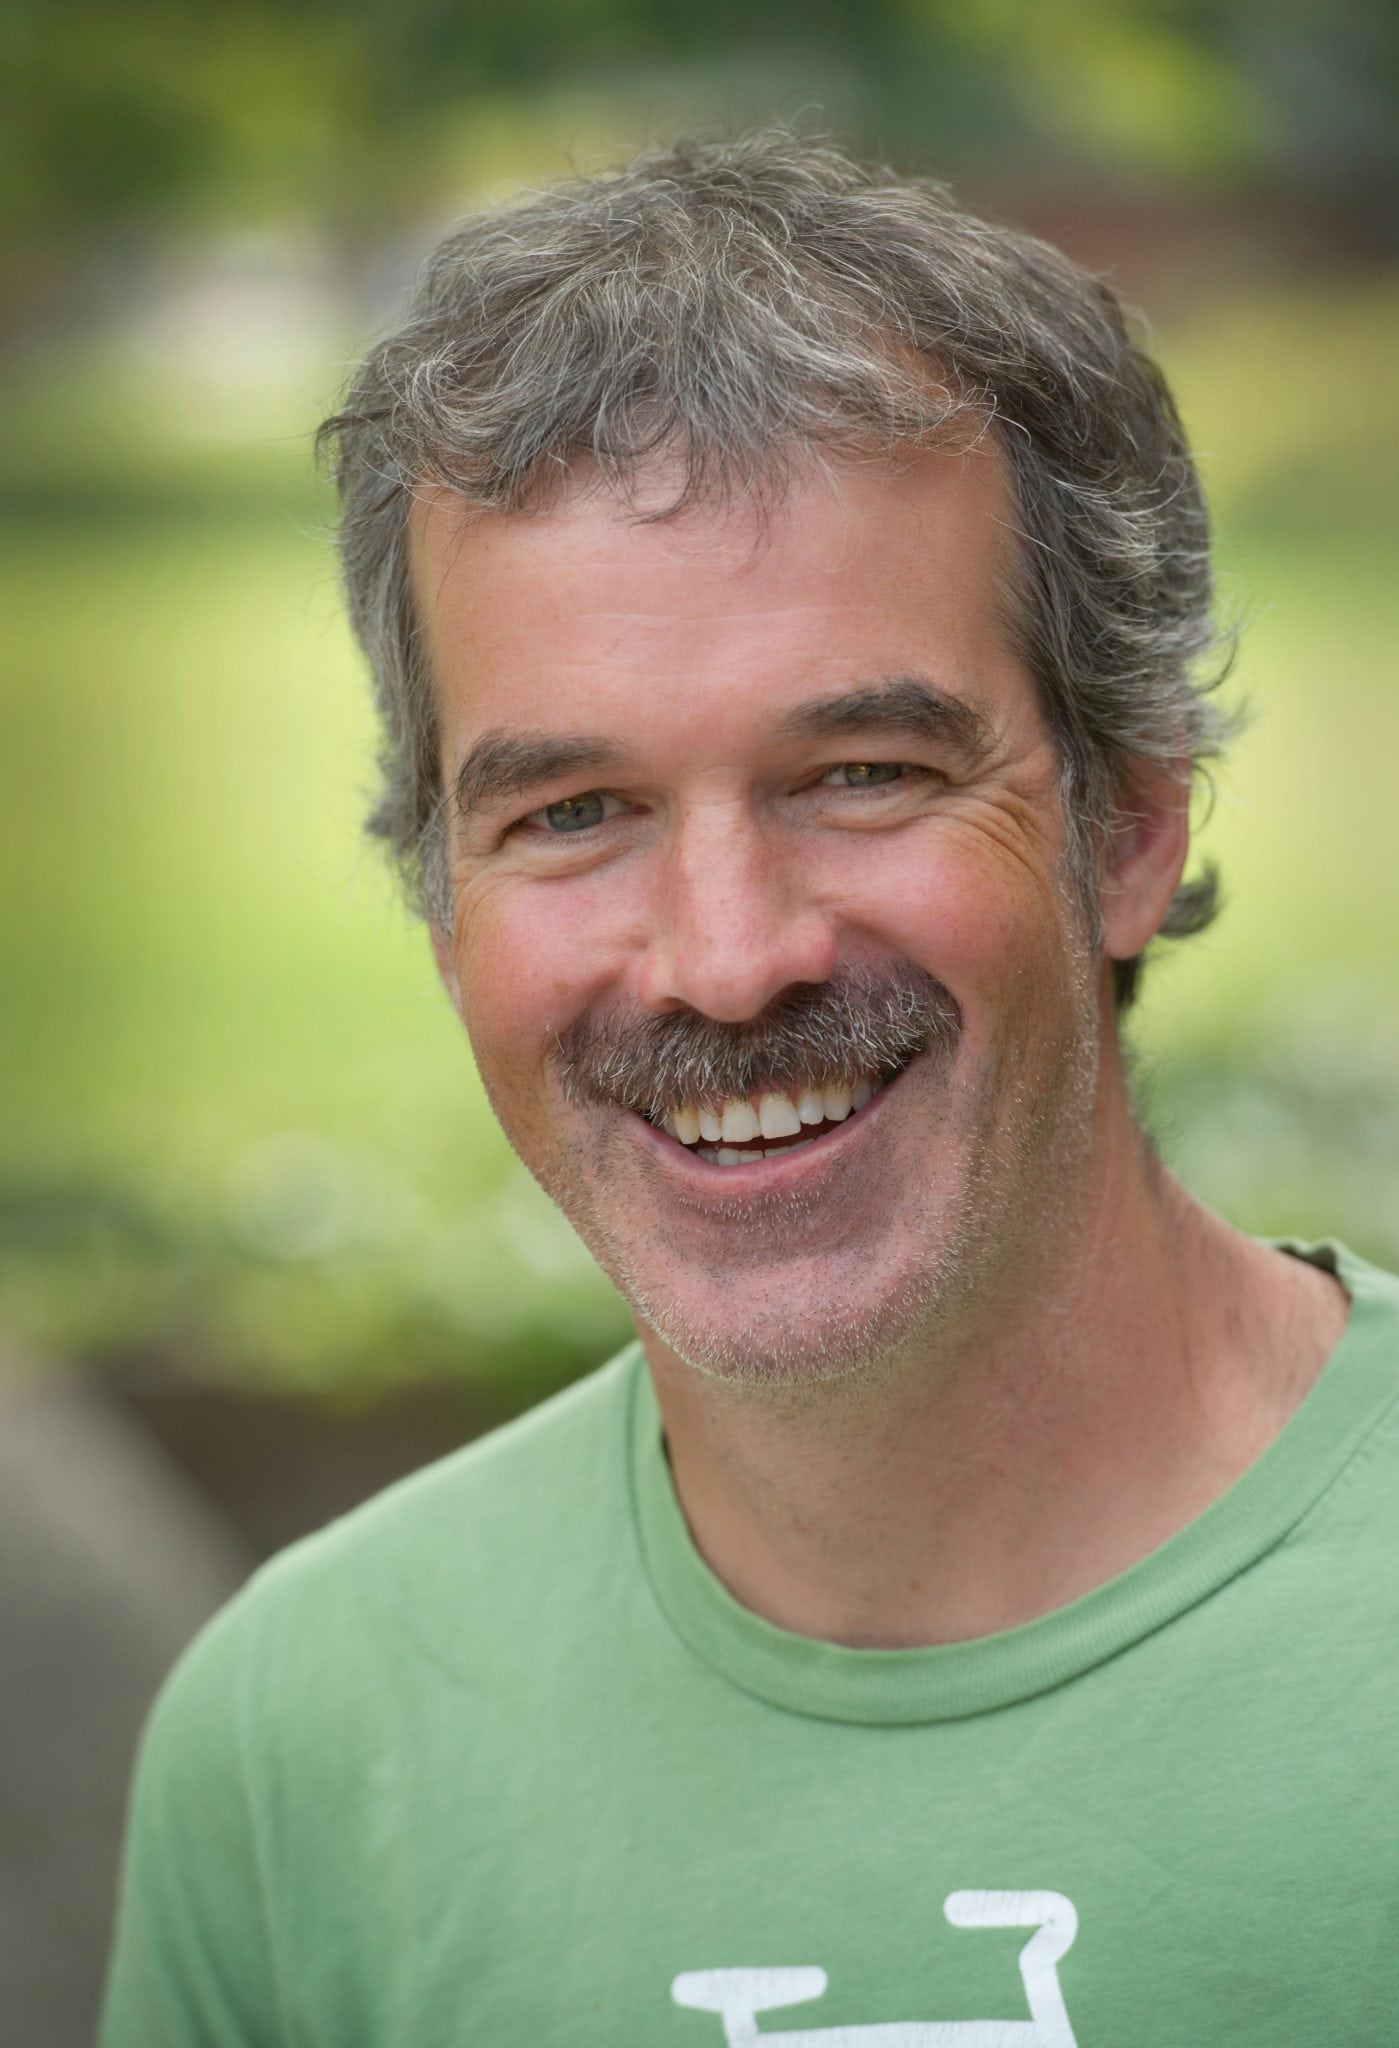 Photo of Prof. John Cant smiling in a green t-shirt